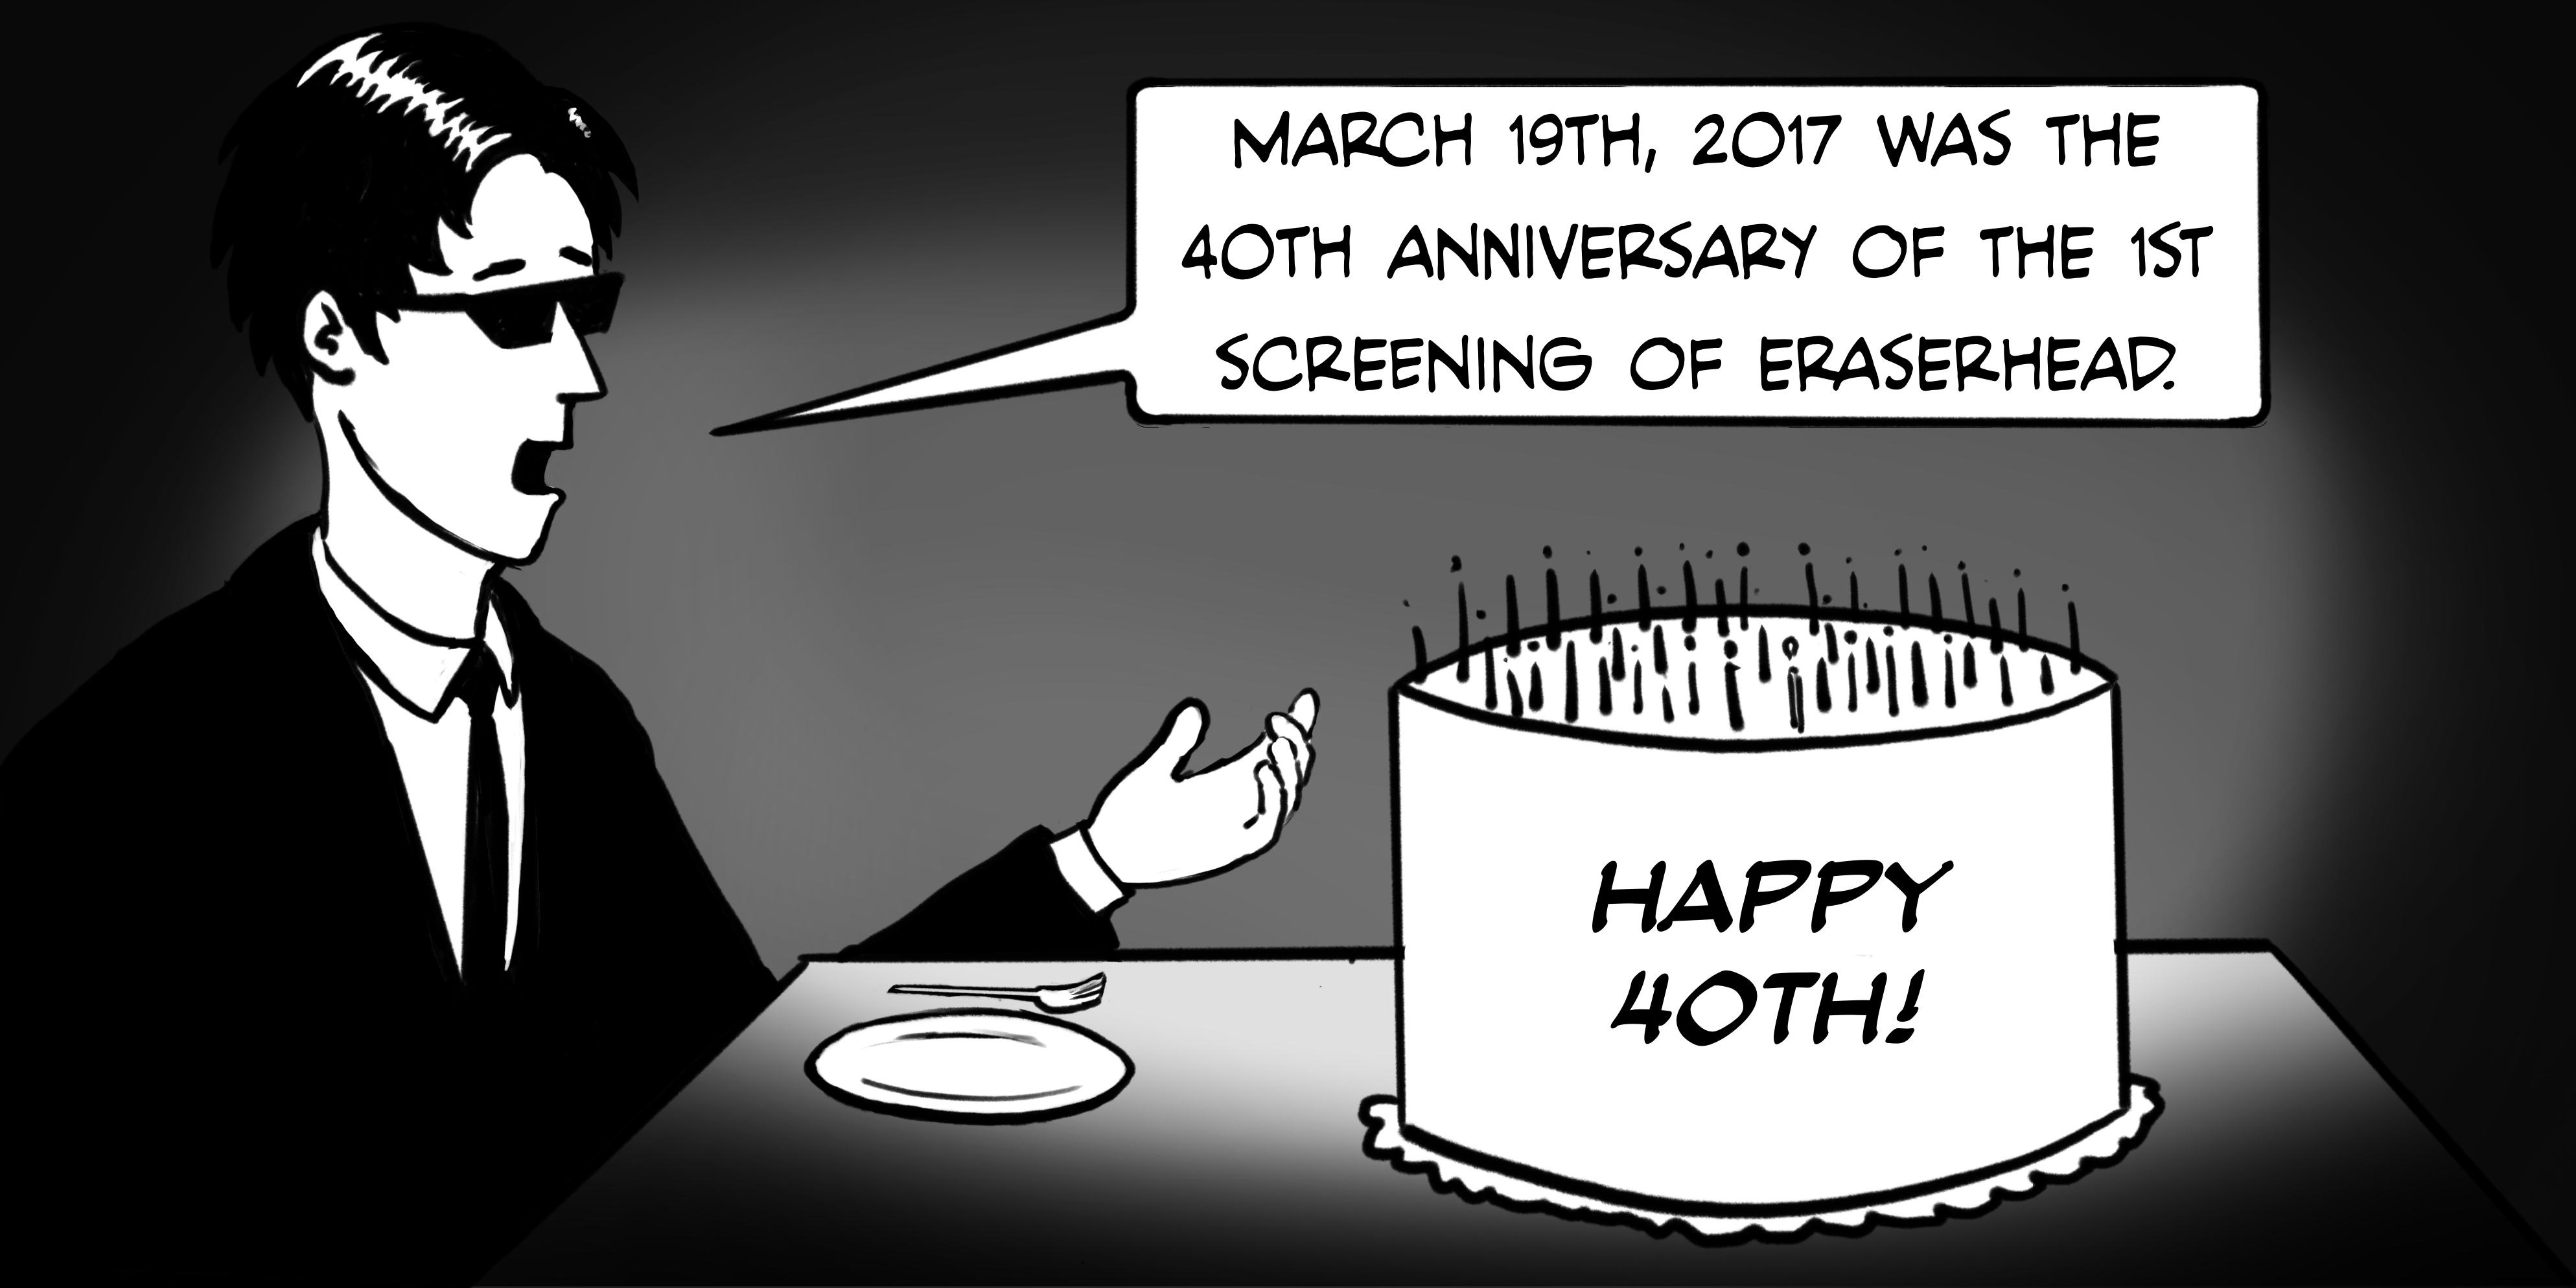 March 19th 2017 was the 40th Anniversary of the first screening of Eraserhead...